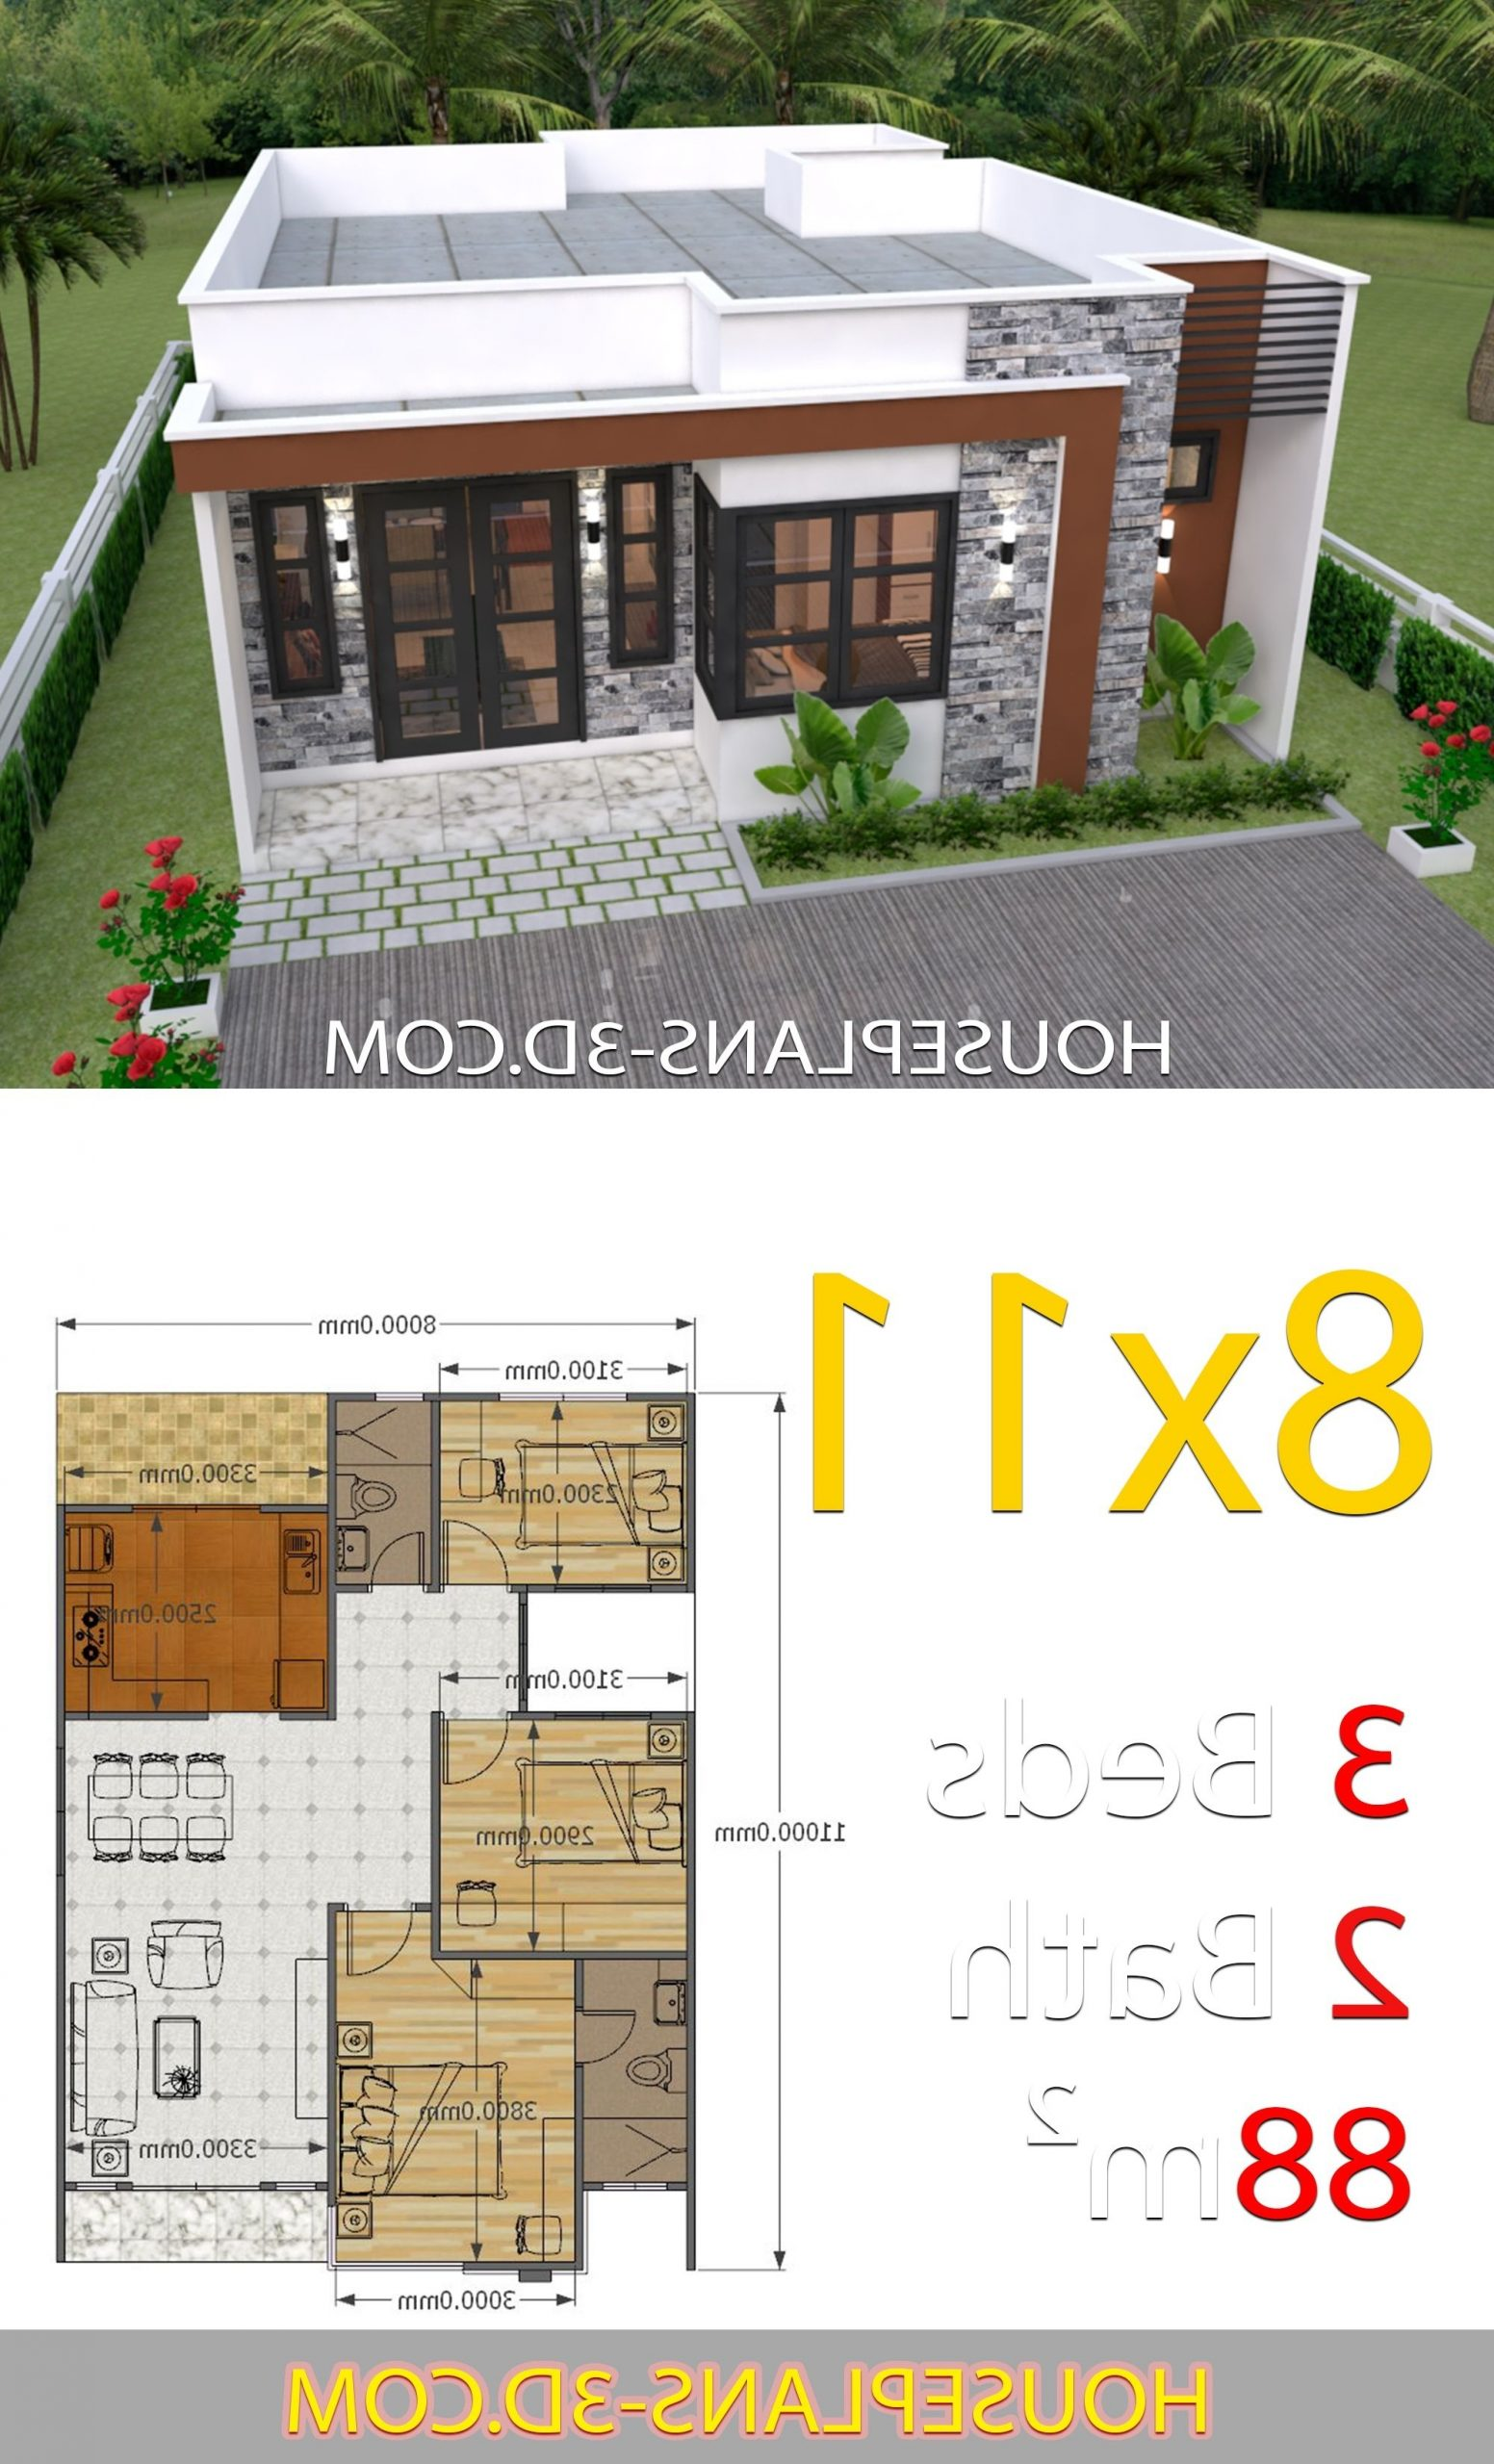 House Design 8X11 With 3 Bedrooms Full Plans House Plans 20+ 8X11 Bathroom Design Ideas